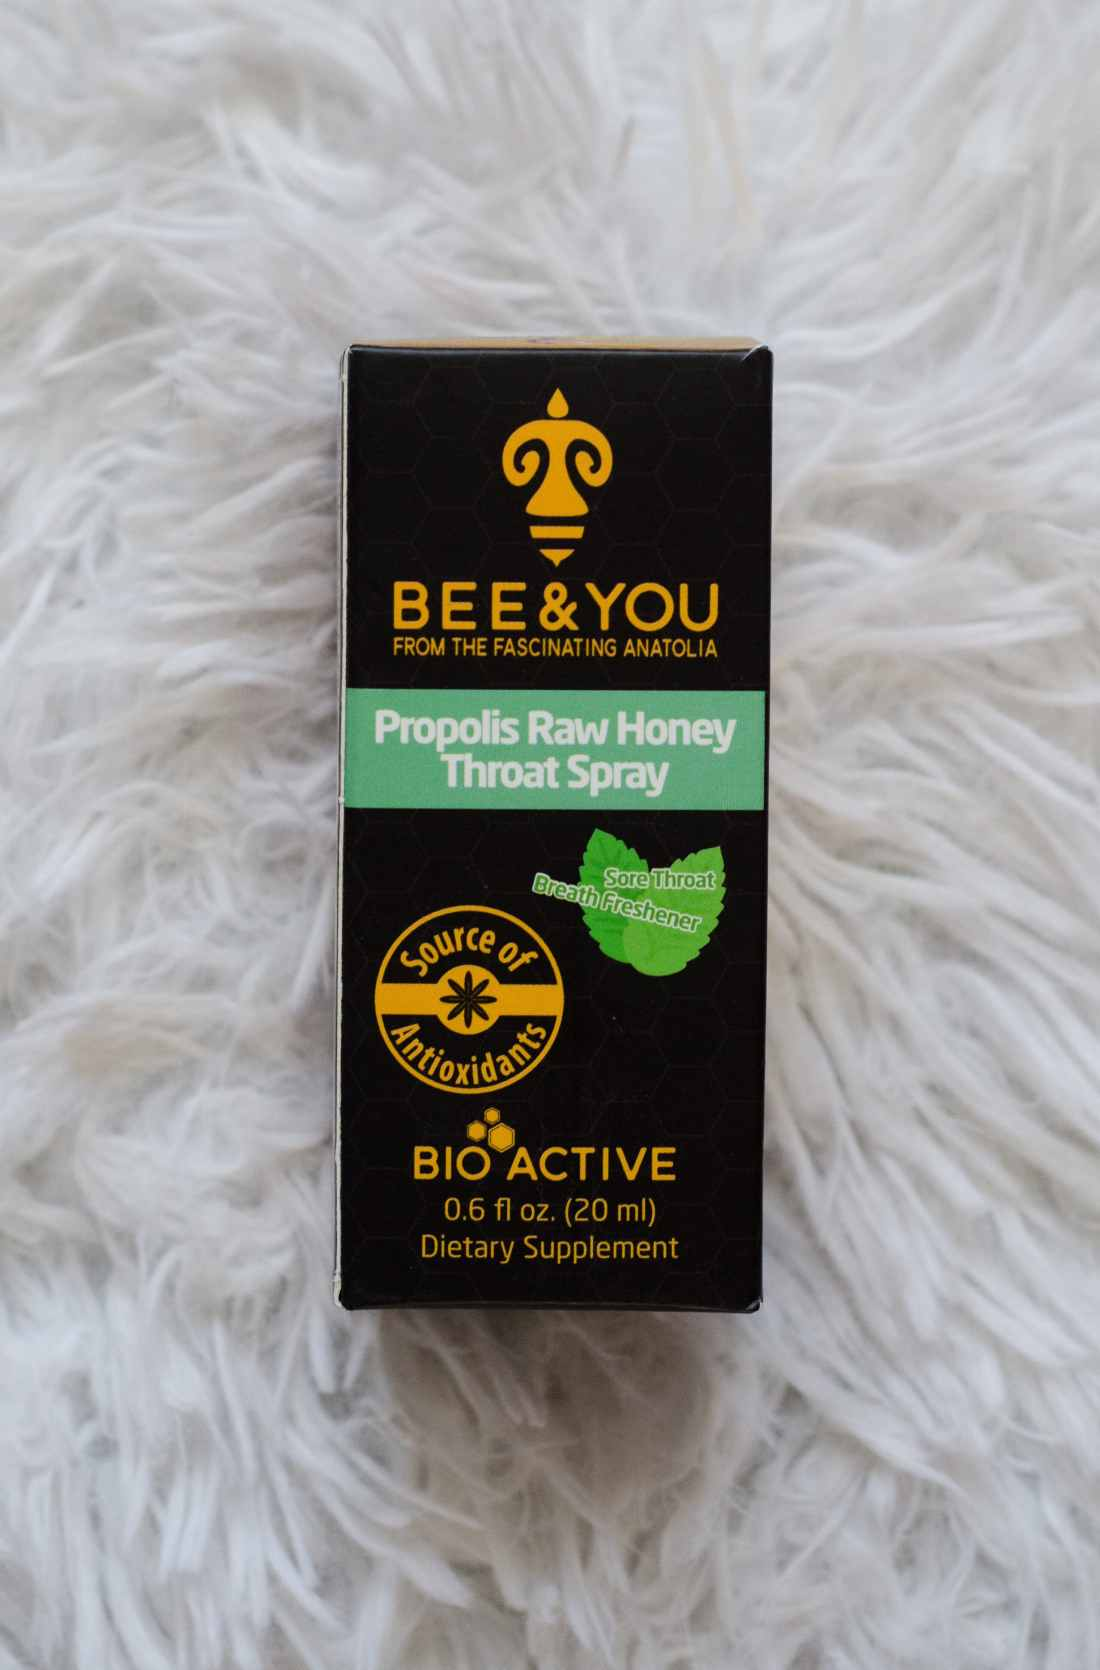 Winter Game Necessaties with BabbleBoxx Bee & You Propolis Raw Honey Throat Spray. BEE & YOU is an award winning line of bee products.